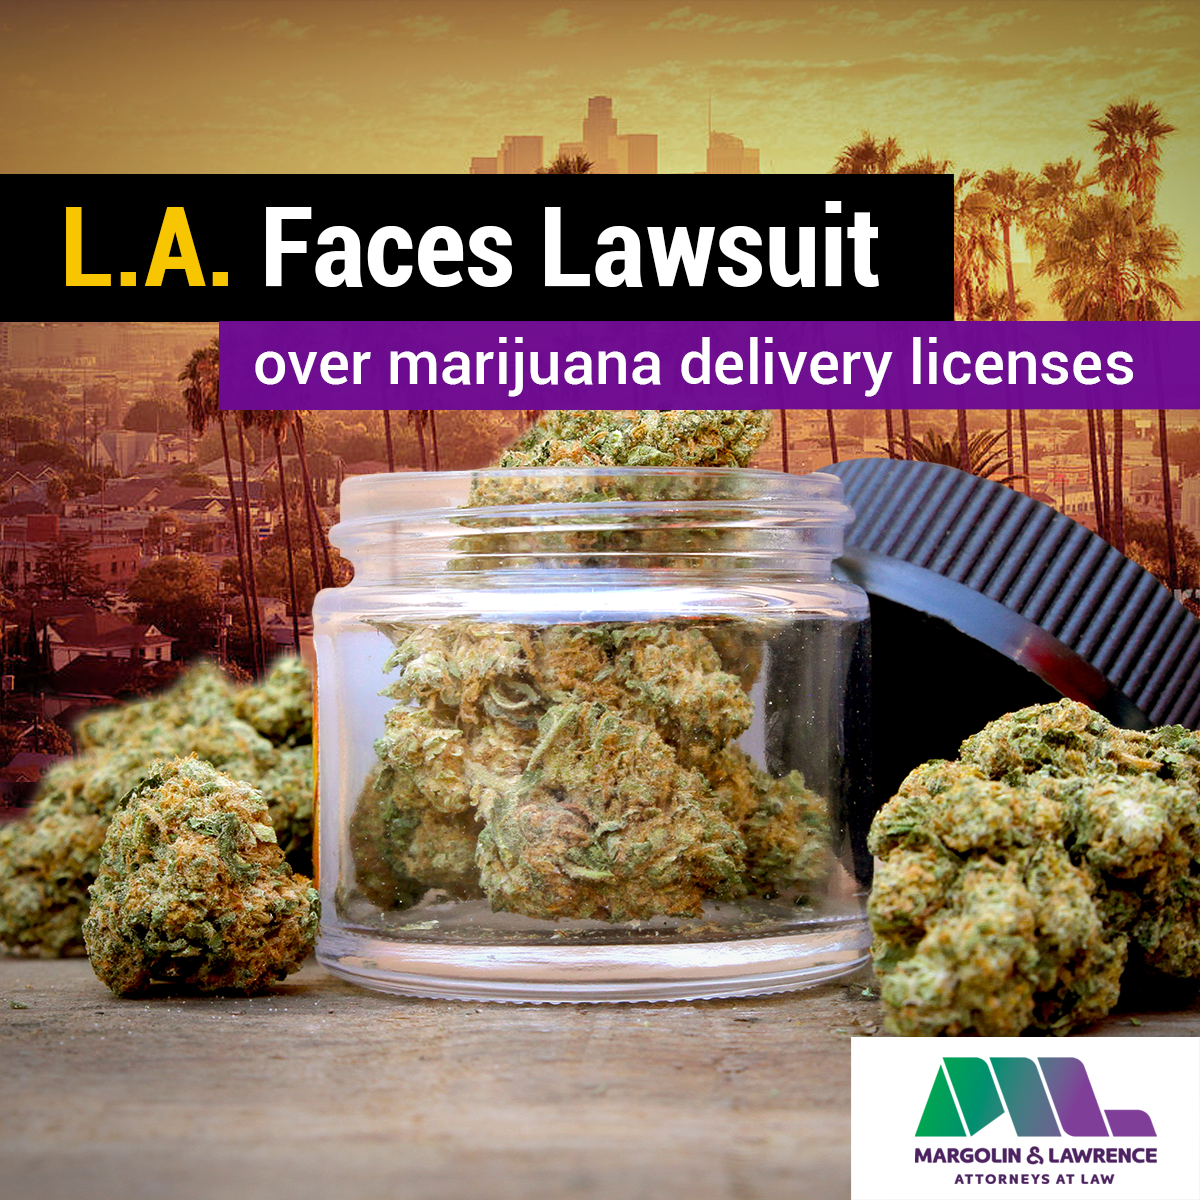 Los Angeles faces lawsuit over marijuana delivery licenses